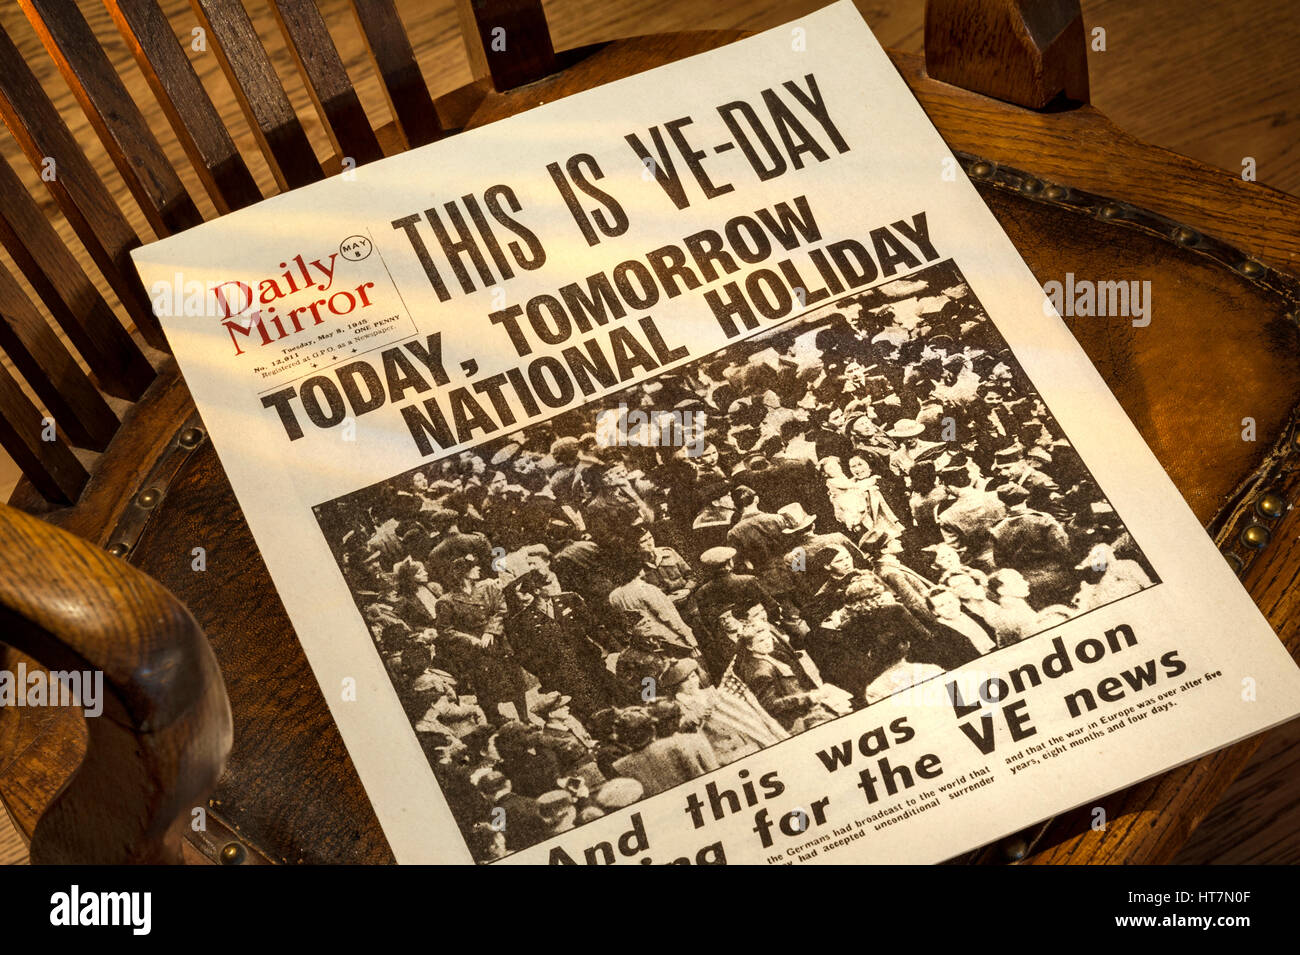 VE DAY UK HEADLINES Historic Daily Mirror newspaper headline 'This is VE Day' dated May 8th 1945 on 1940's wooden Stock Photo